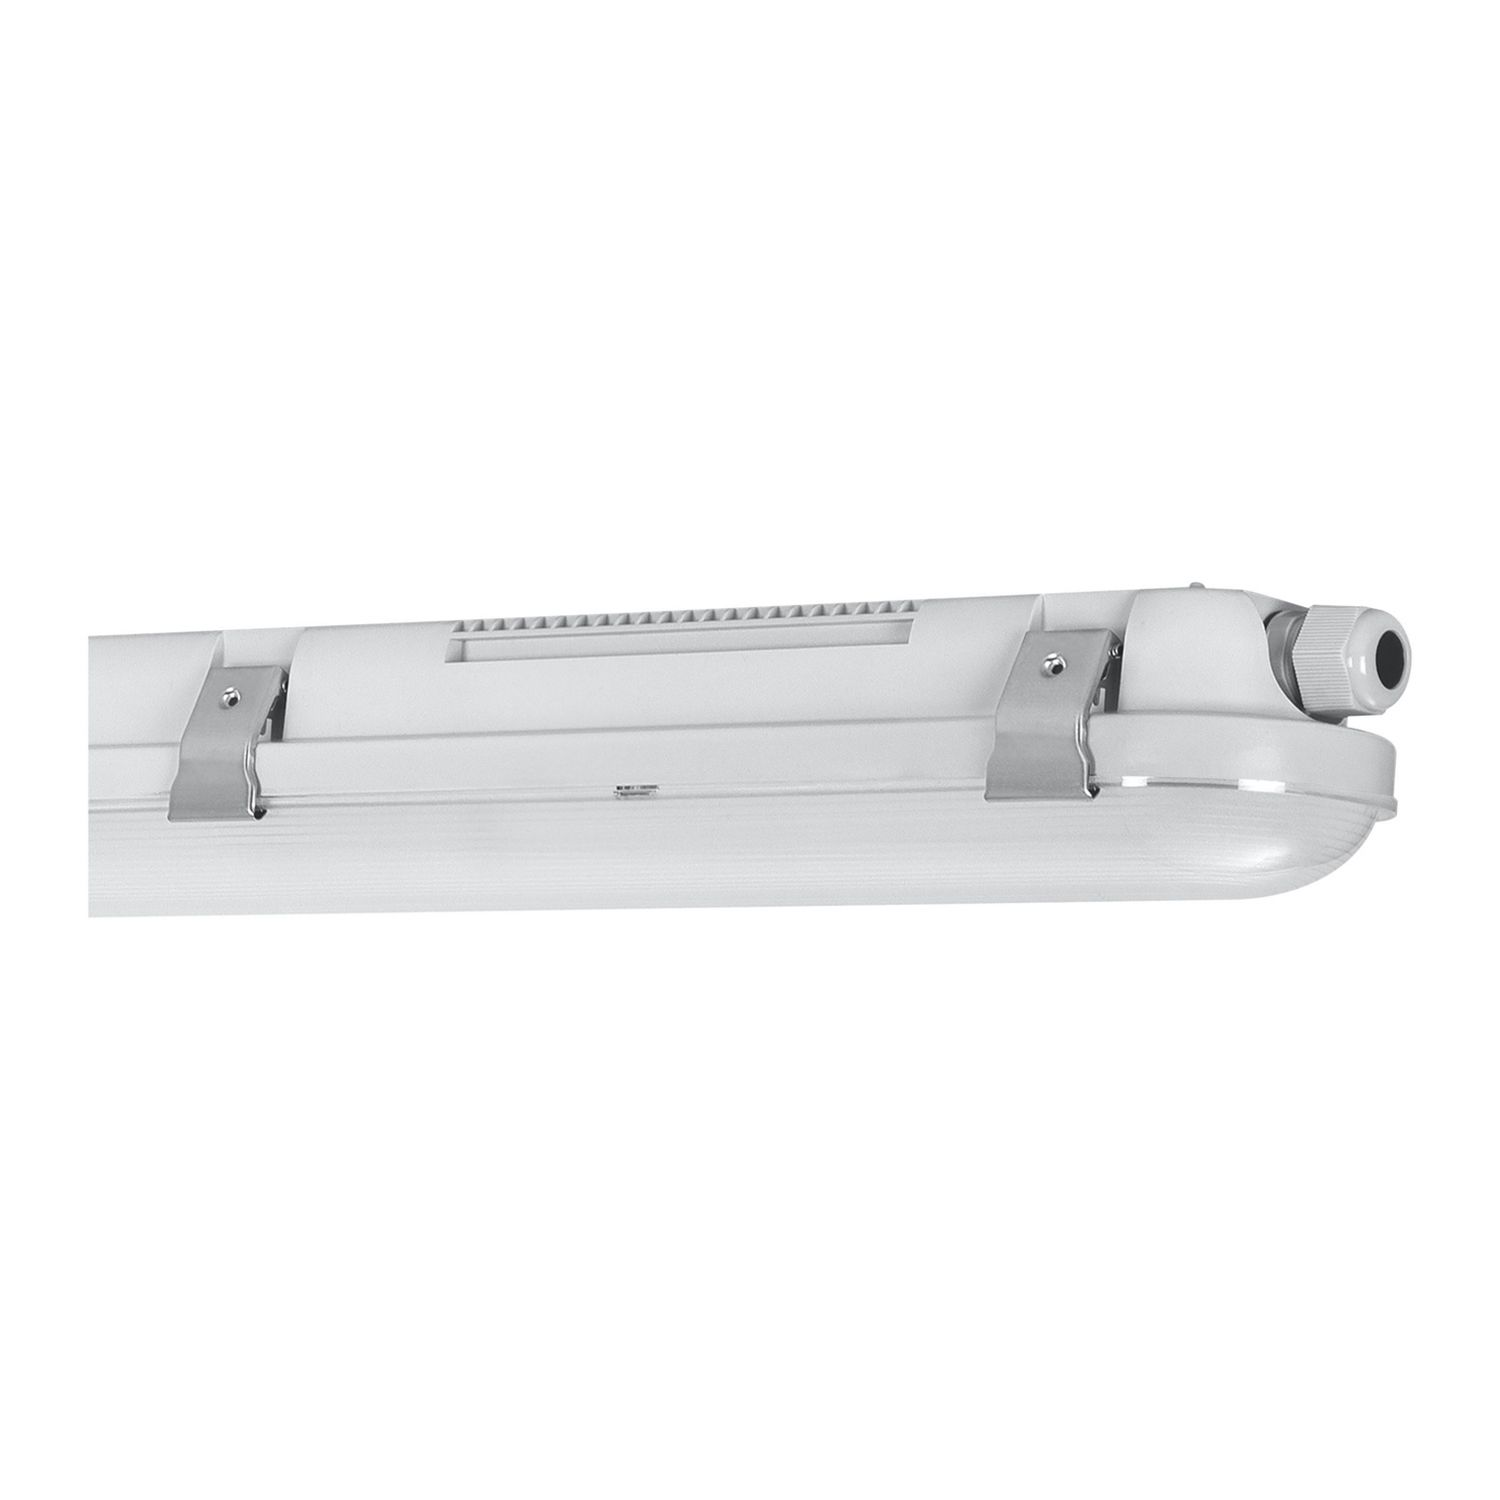 Ledvance LED Waterproof Batten 120cm 39W 4000K IP65 5x Through Wiring | Replacer for 2x36W